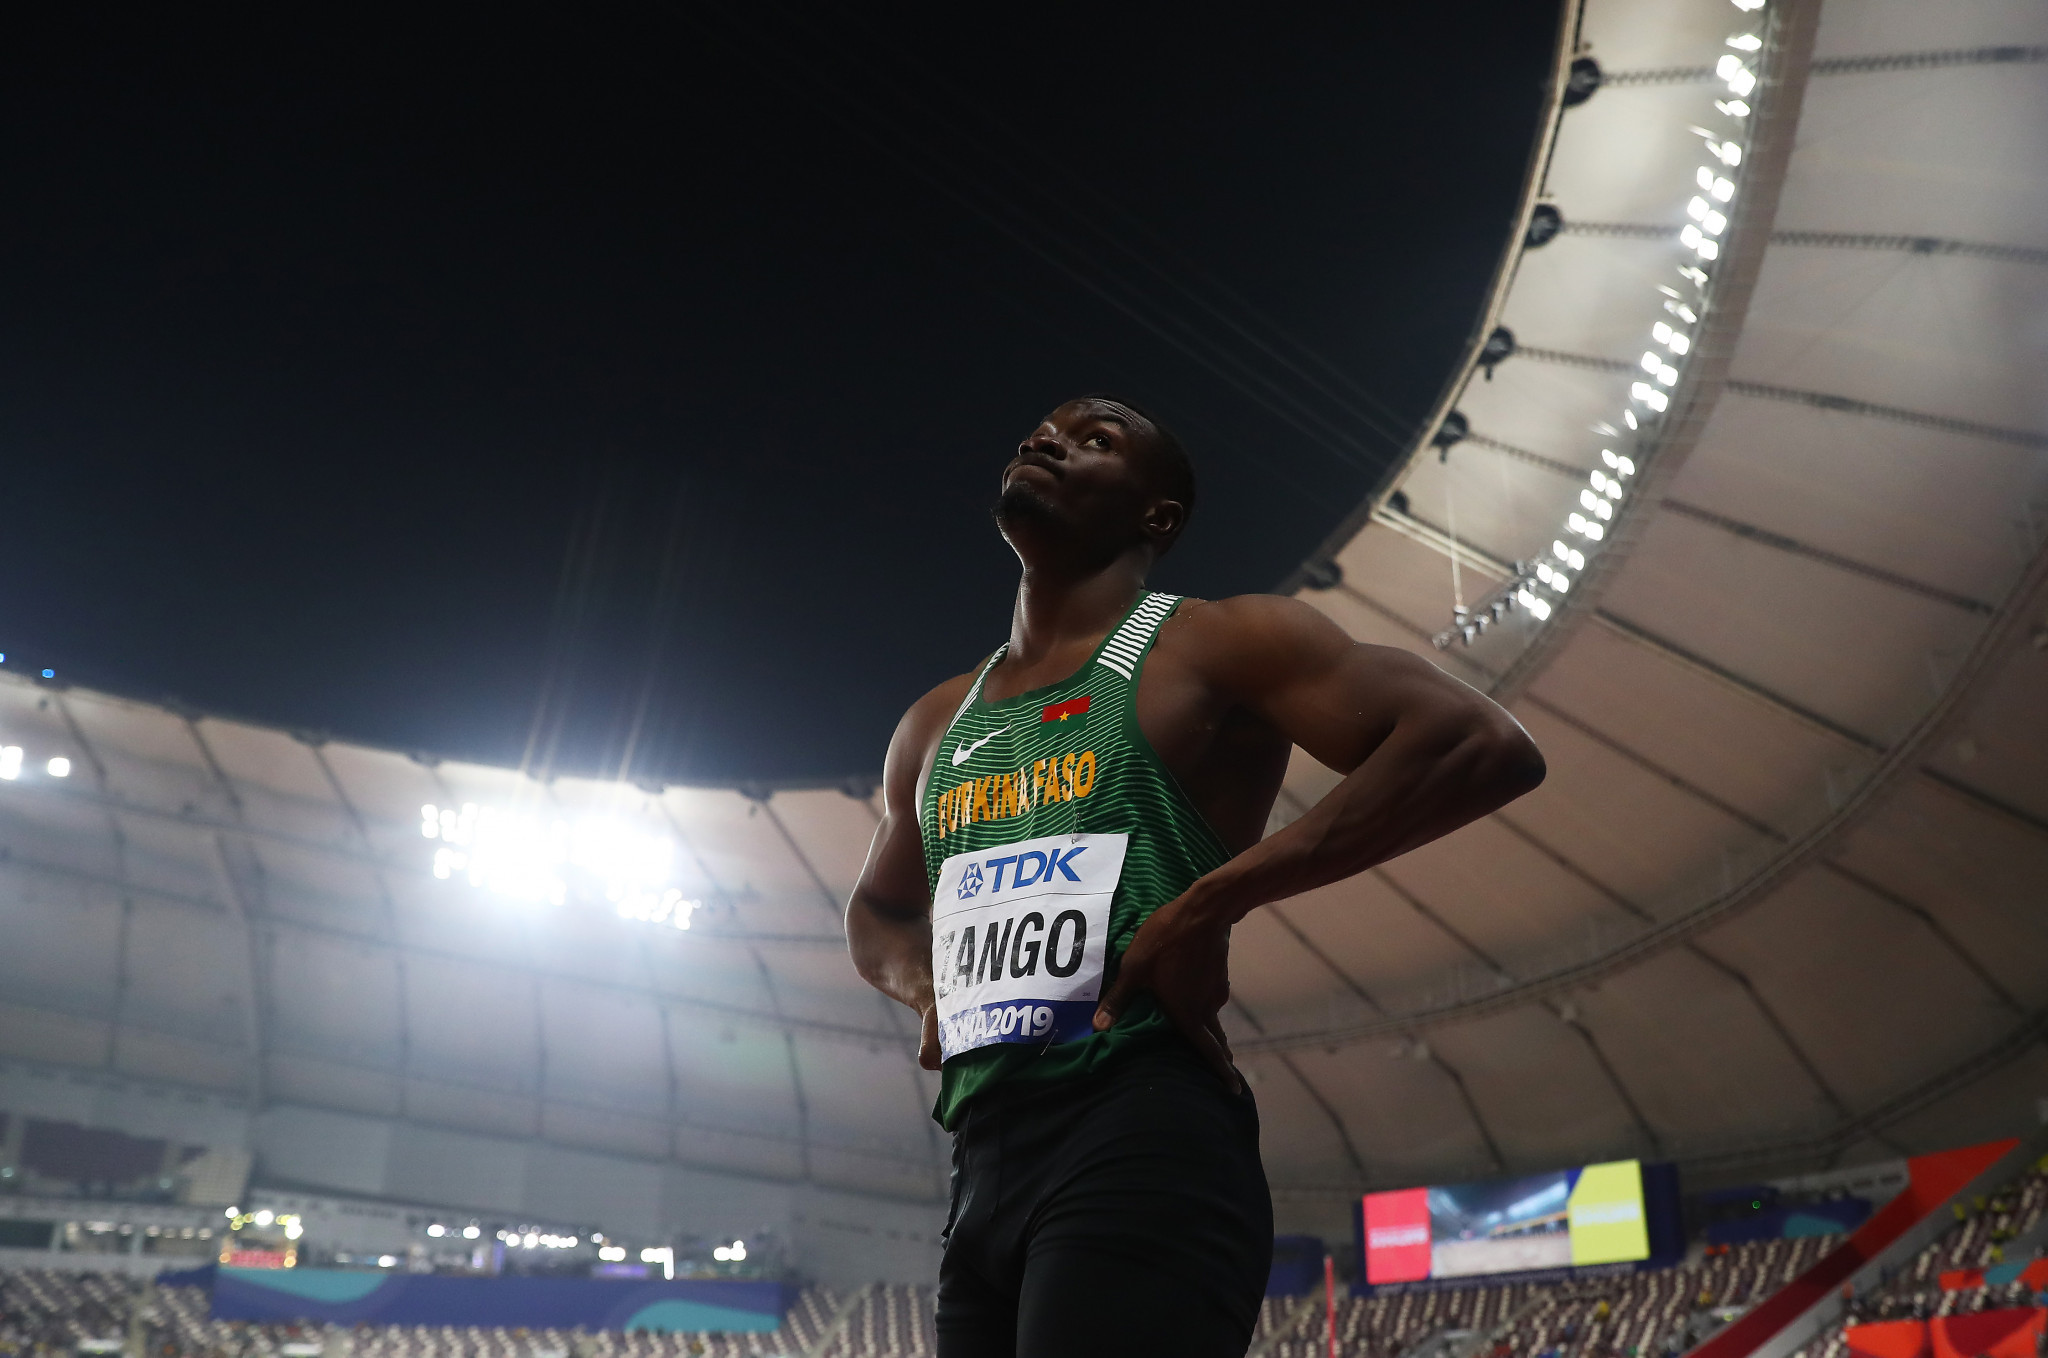 Triple jumpers eye world records at World Athletics Indoor Tour in Madrid